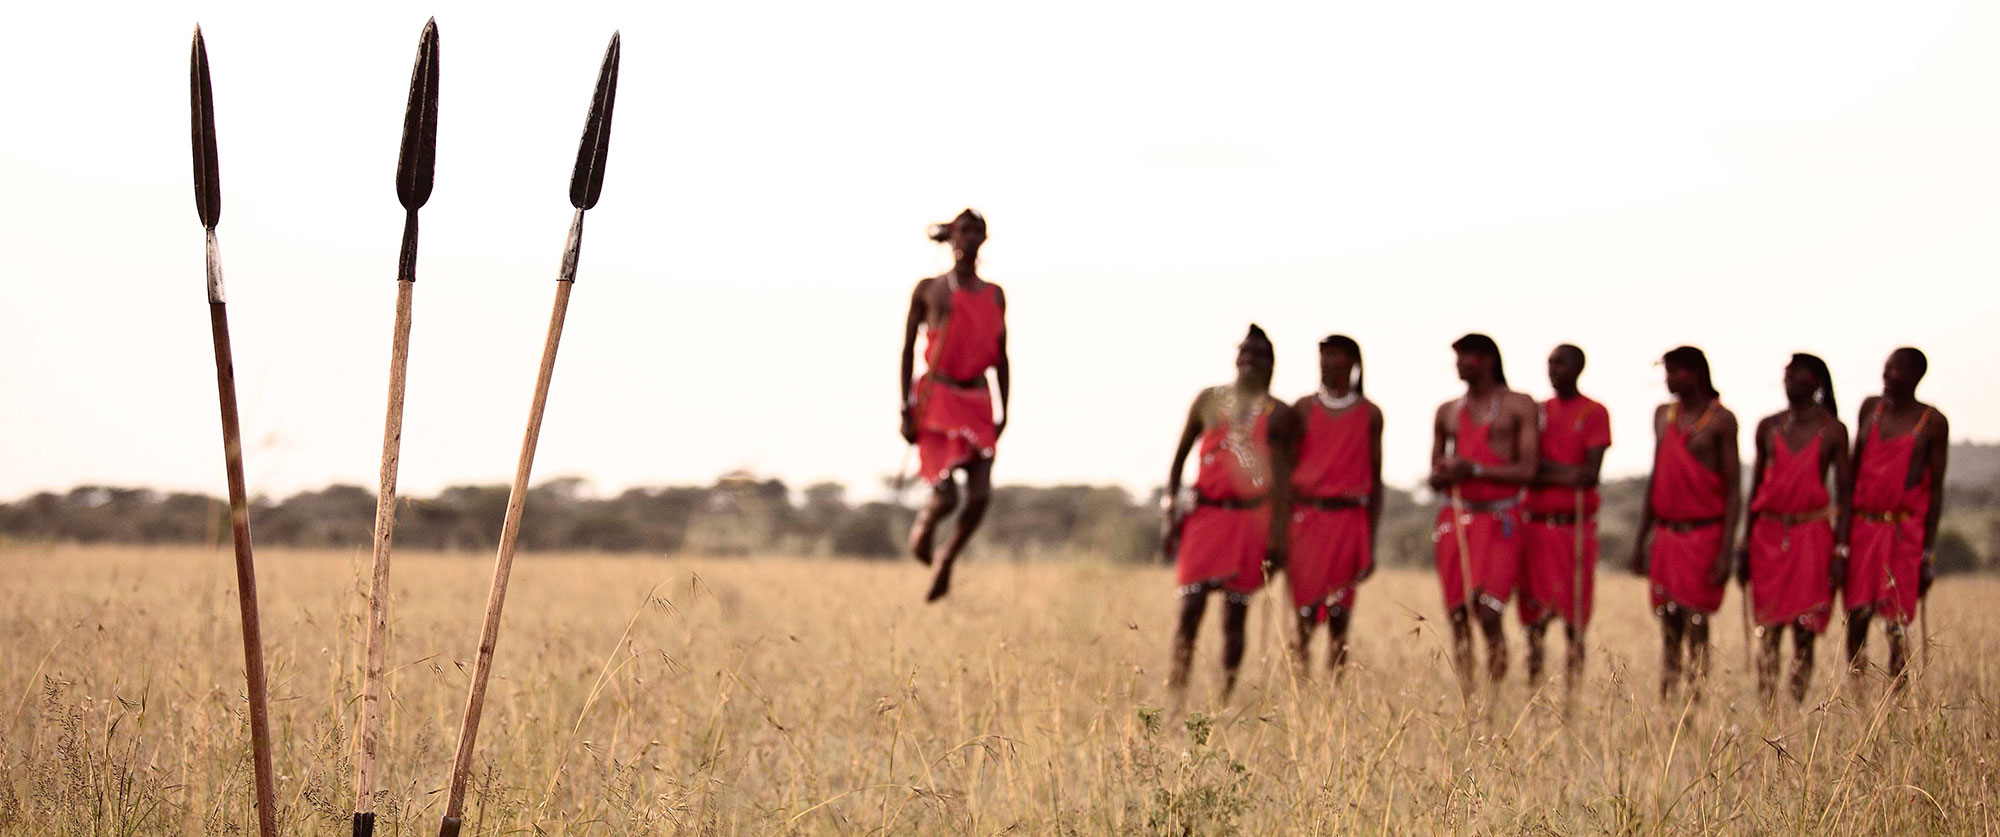 Tanzanian Culture - Wildlife - Handcrafted - Africa - Vacation